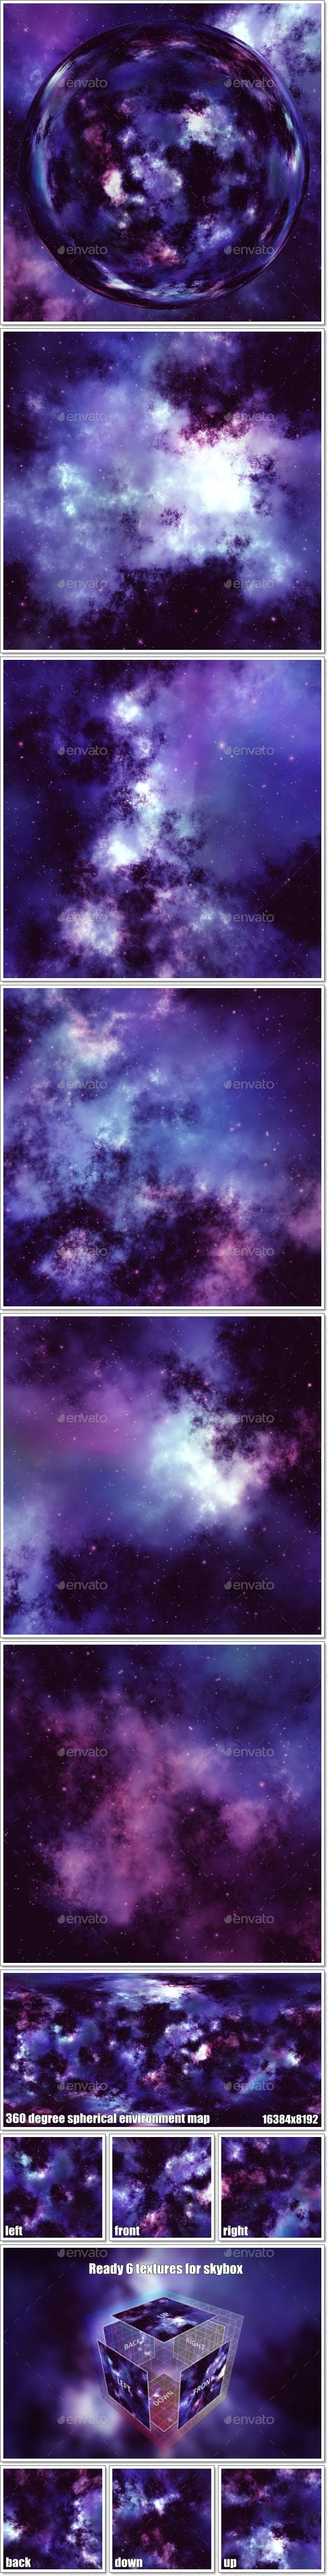 Nebula Space Environment HDRI Map 011 - 3DOcean Item for Sale